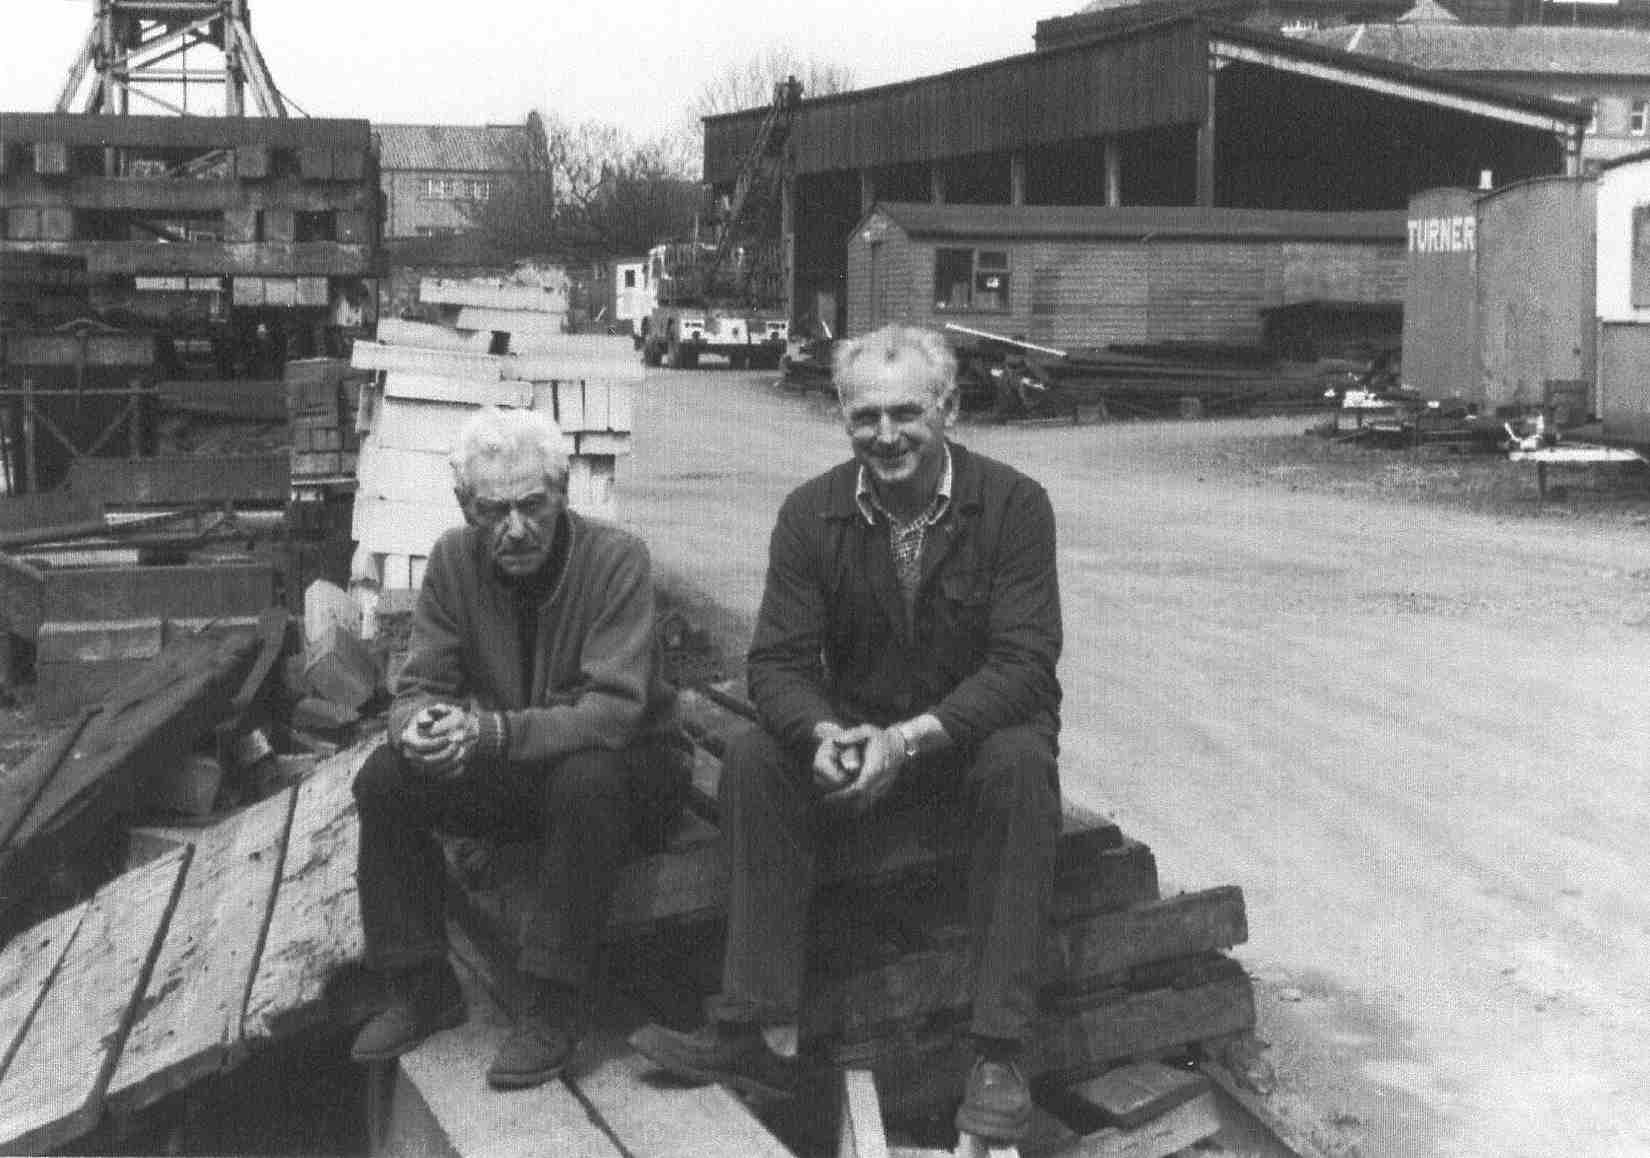 Two Men Taking Pause From Work At AM Carmichael's In Halmyre Street 1970s